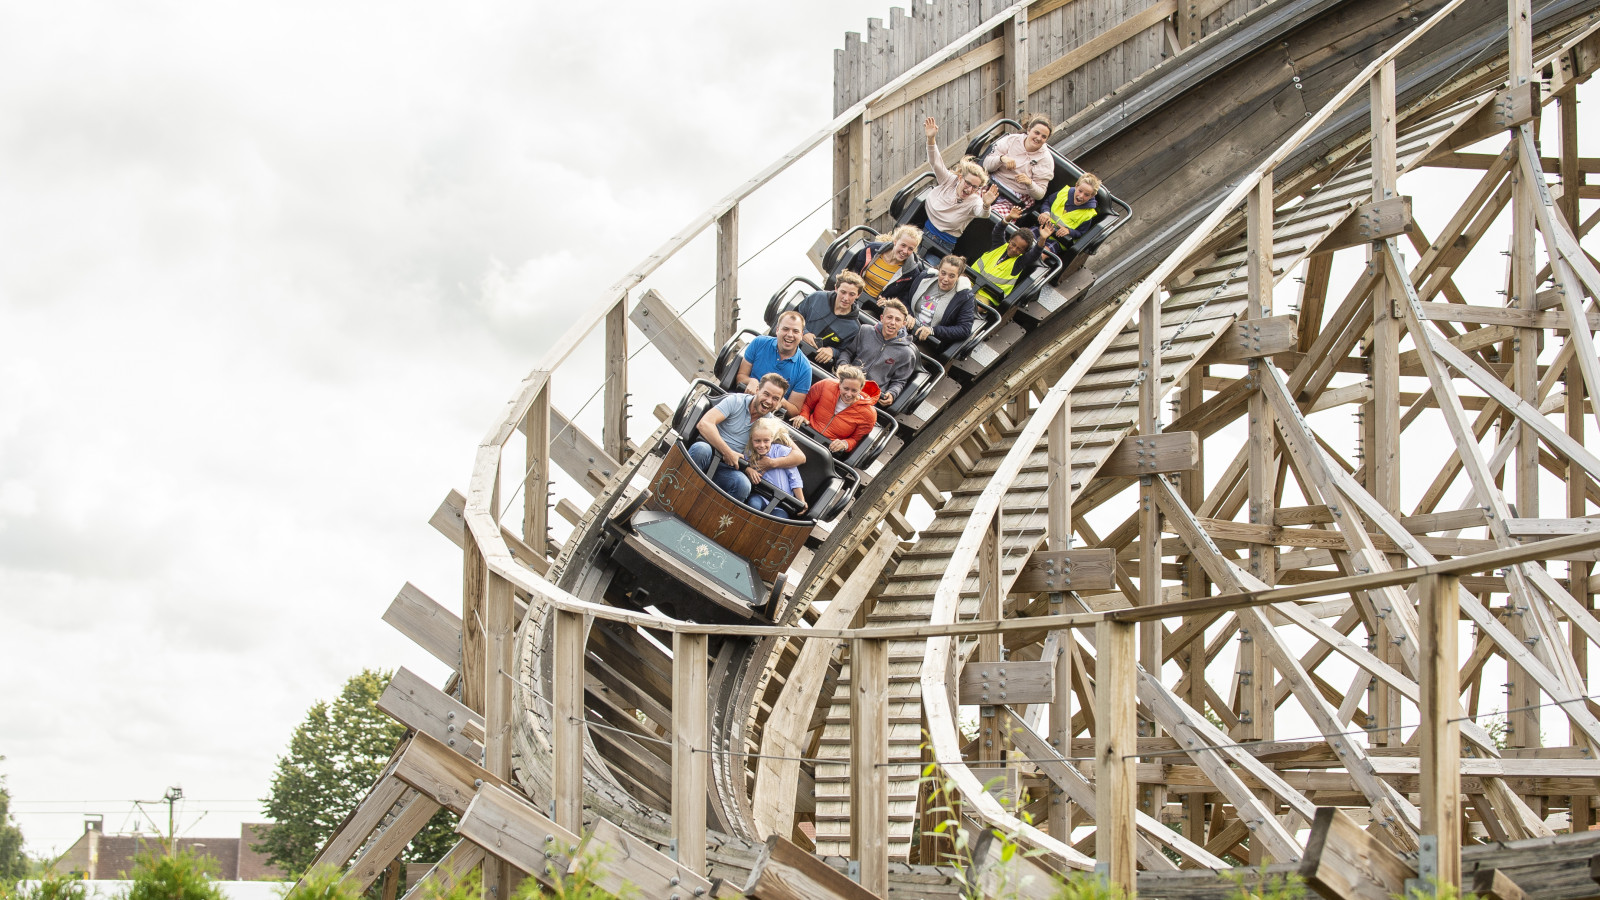 Plopsa wint 6 Diamond ThemePark Awards